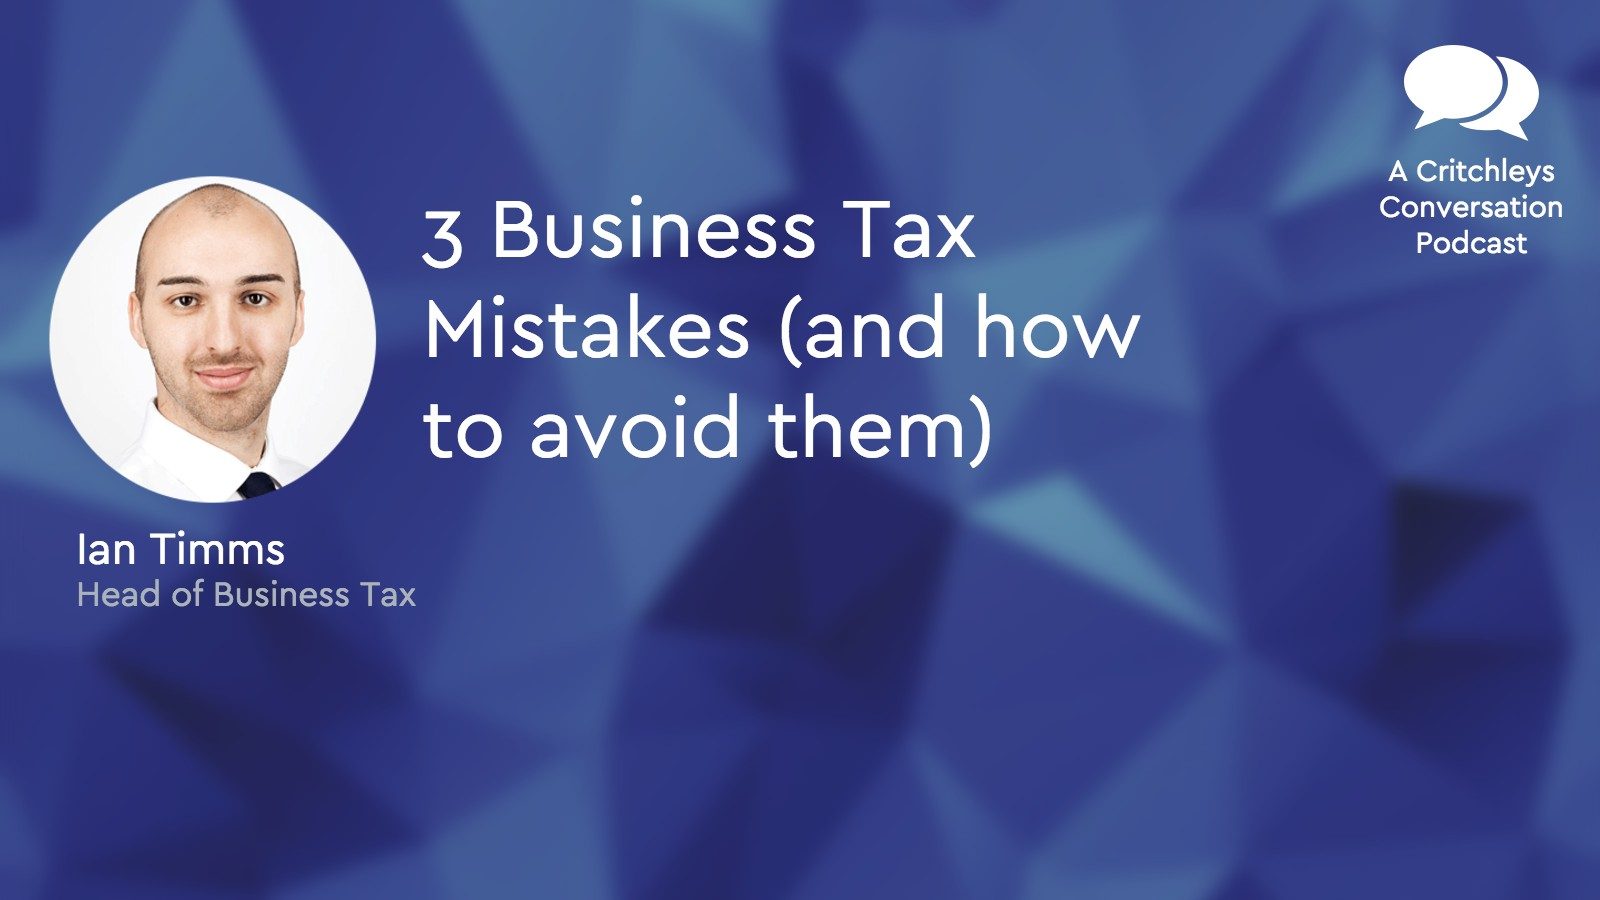 3 Business Tax Mistakes (and how to avoid them)